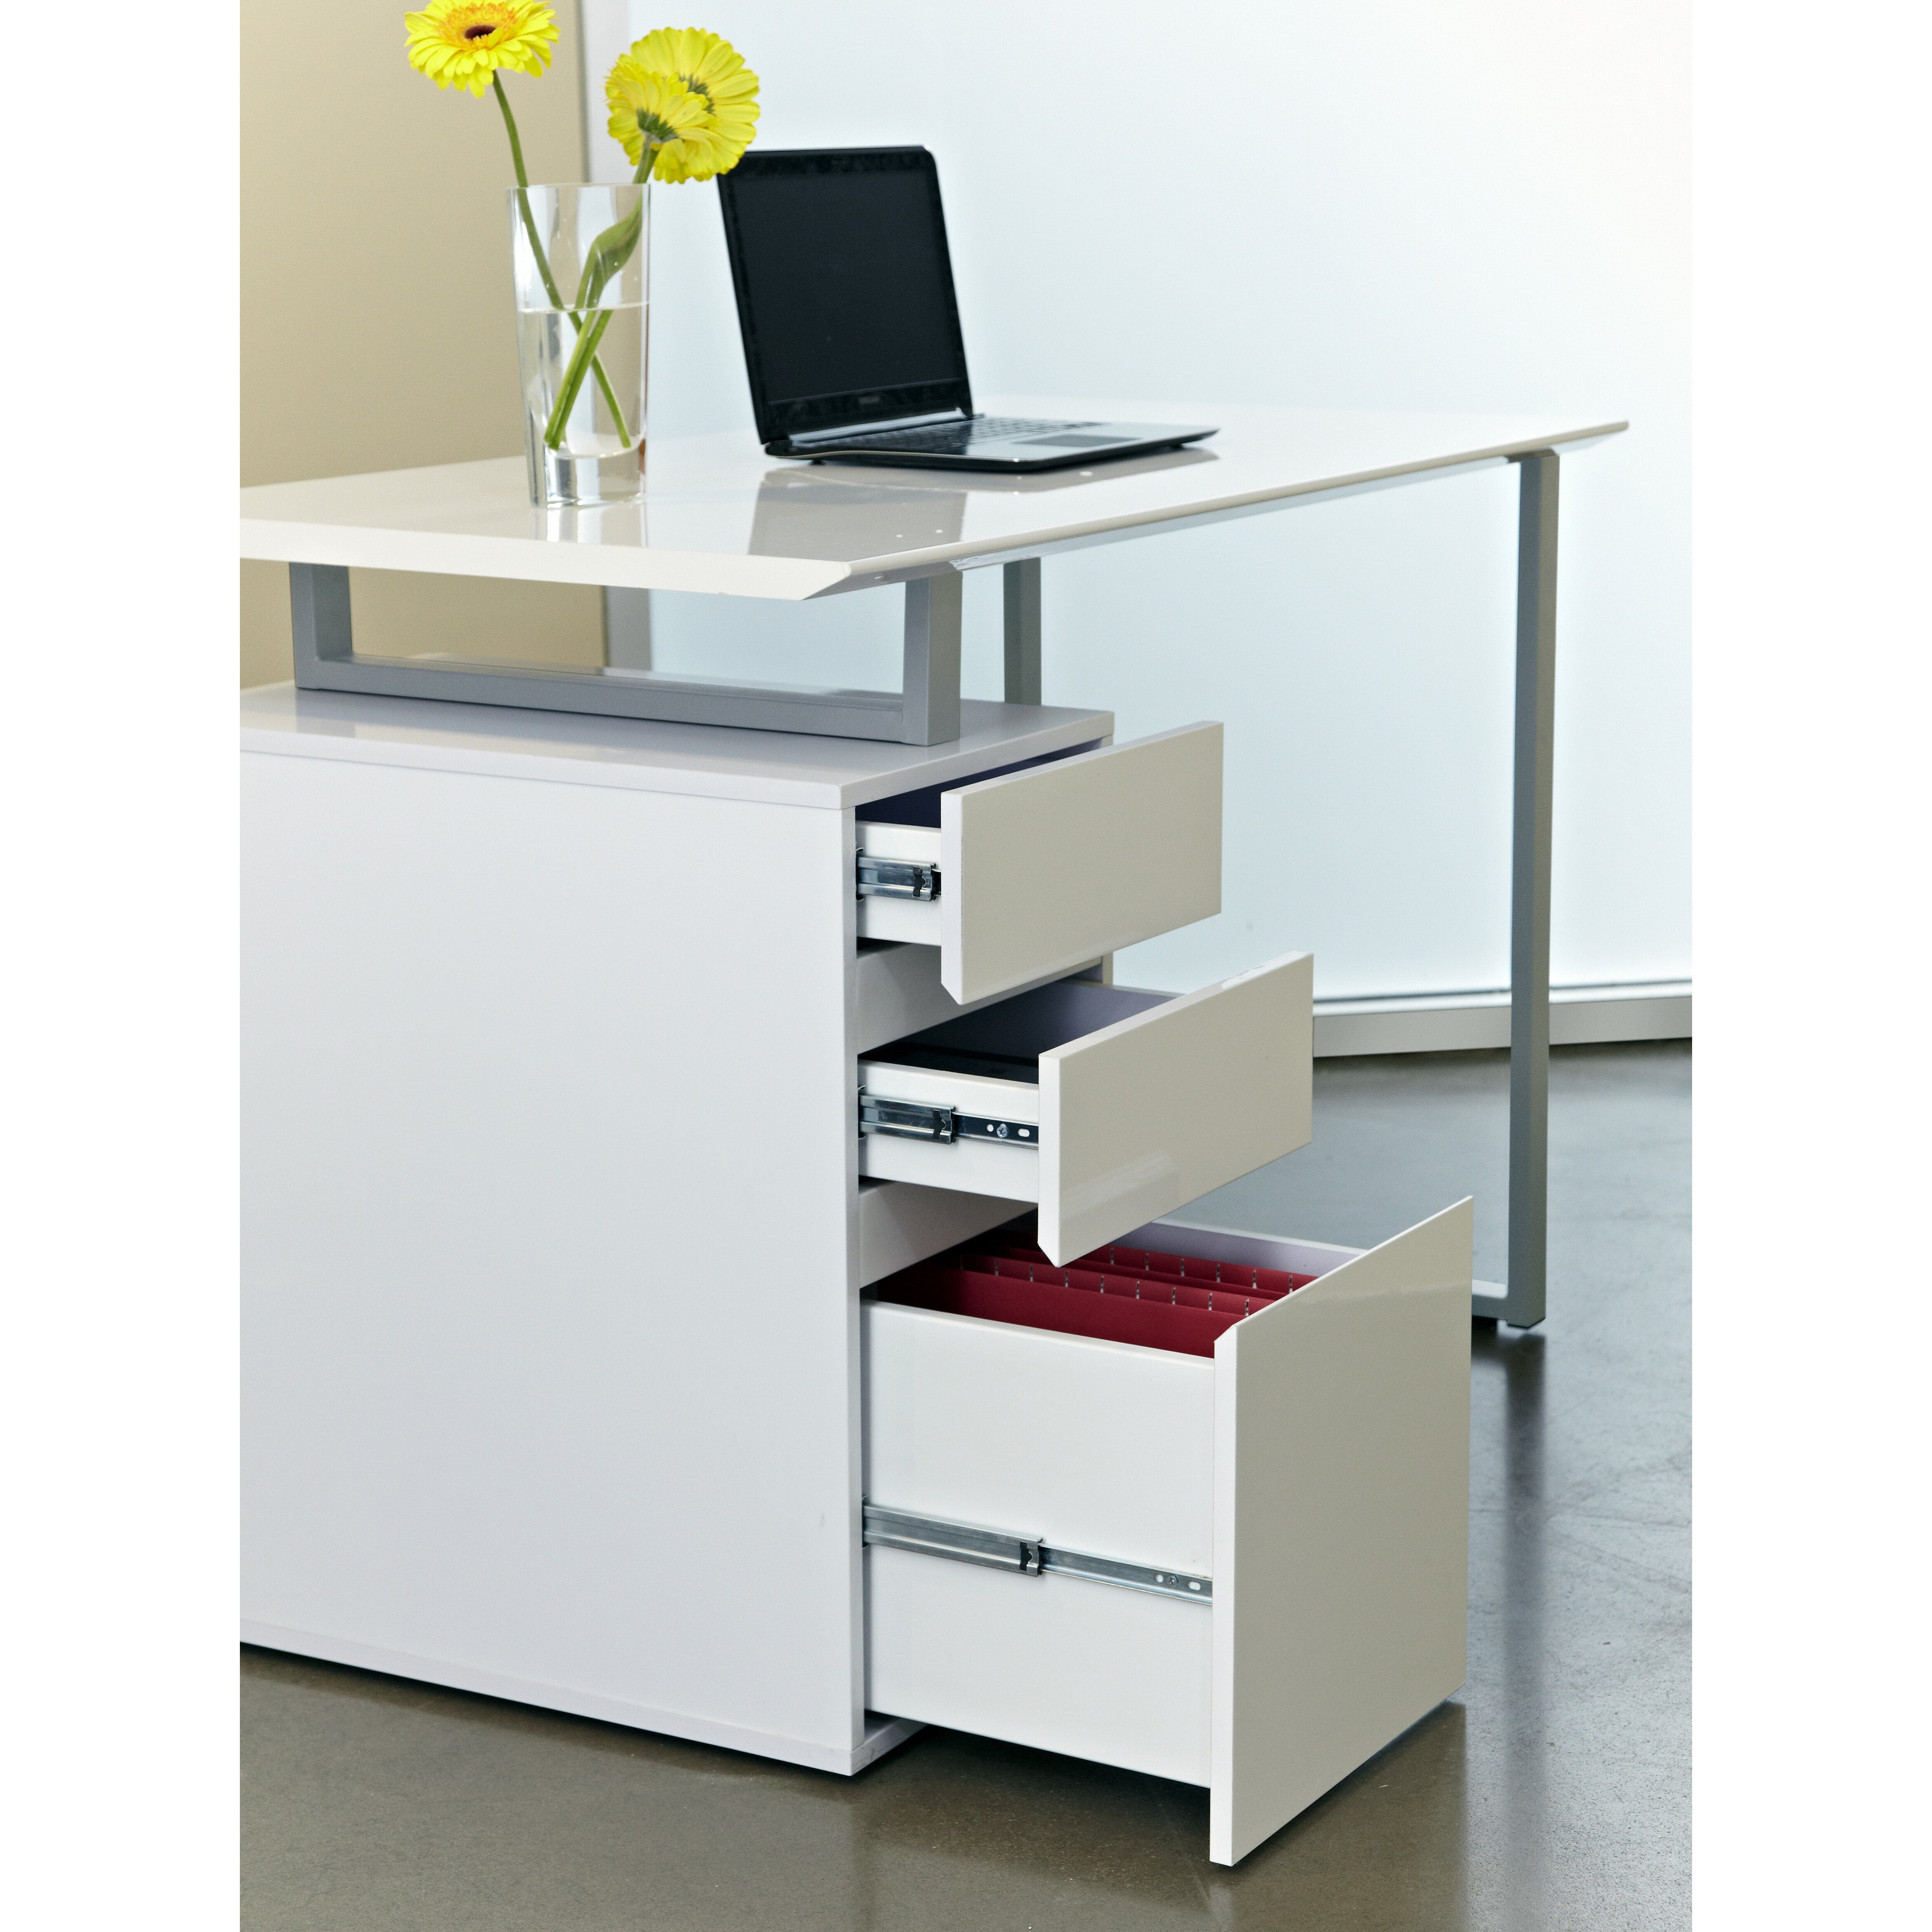 Jesper office tribeca 220 study writing desk reviews wayfair - Jesper office desk ...